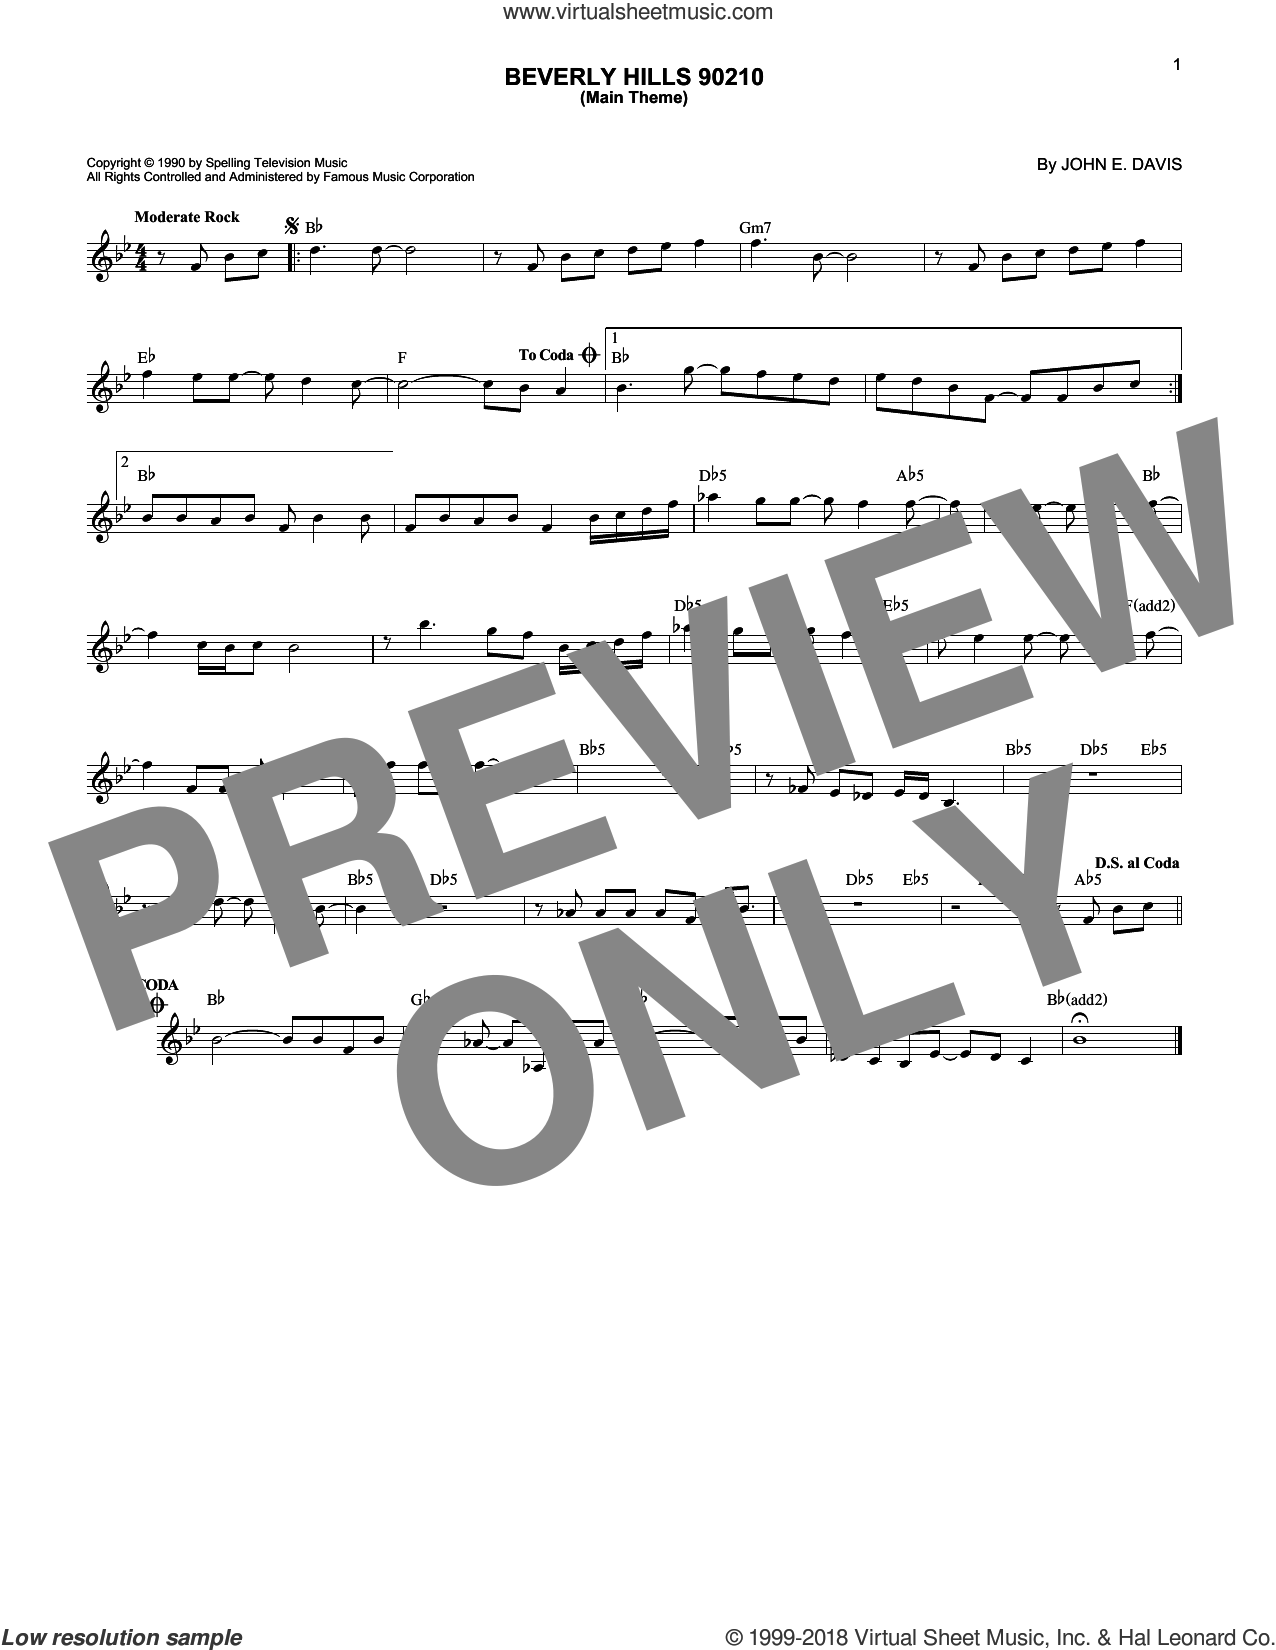 Beverly Hills 90210 (Main Theme) sheet music for voice and other instruments (fake book) by John E. Davis. Score Image Preview.